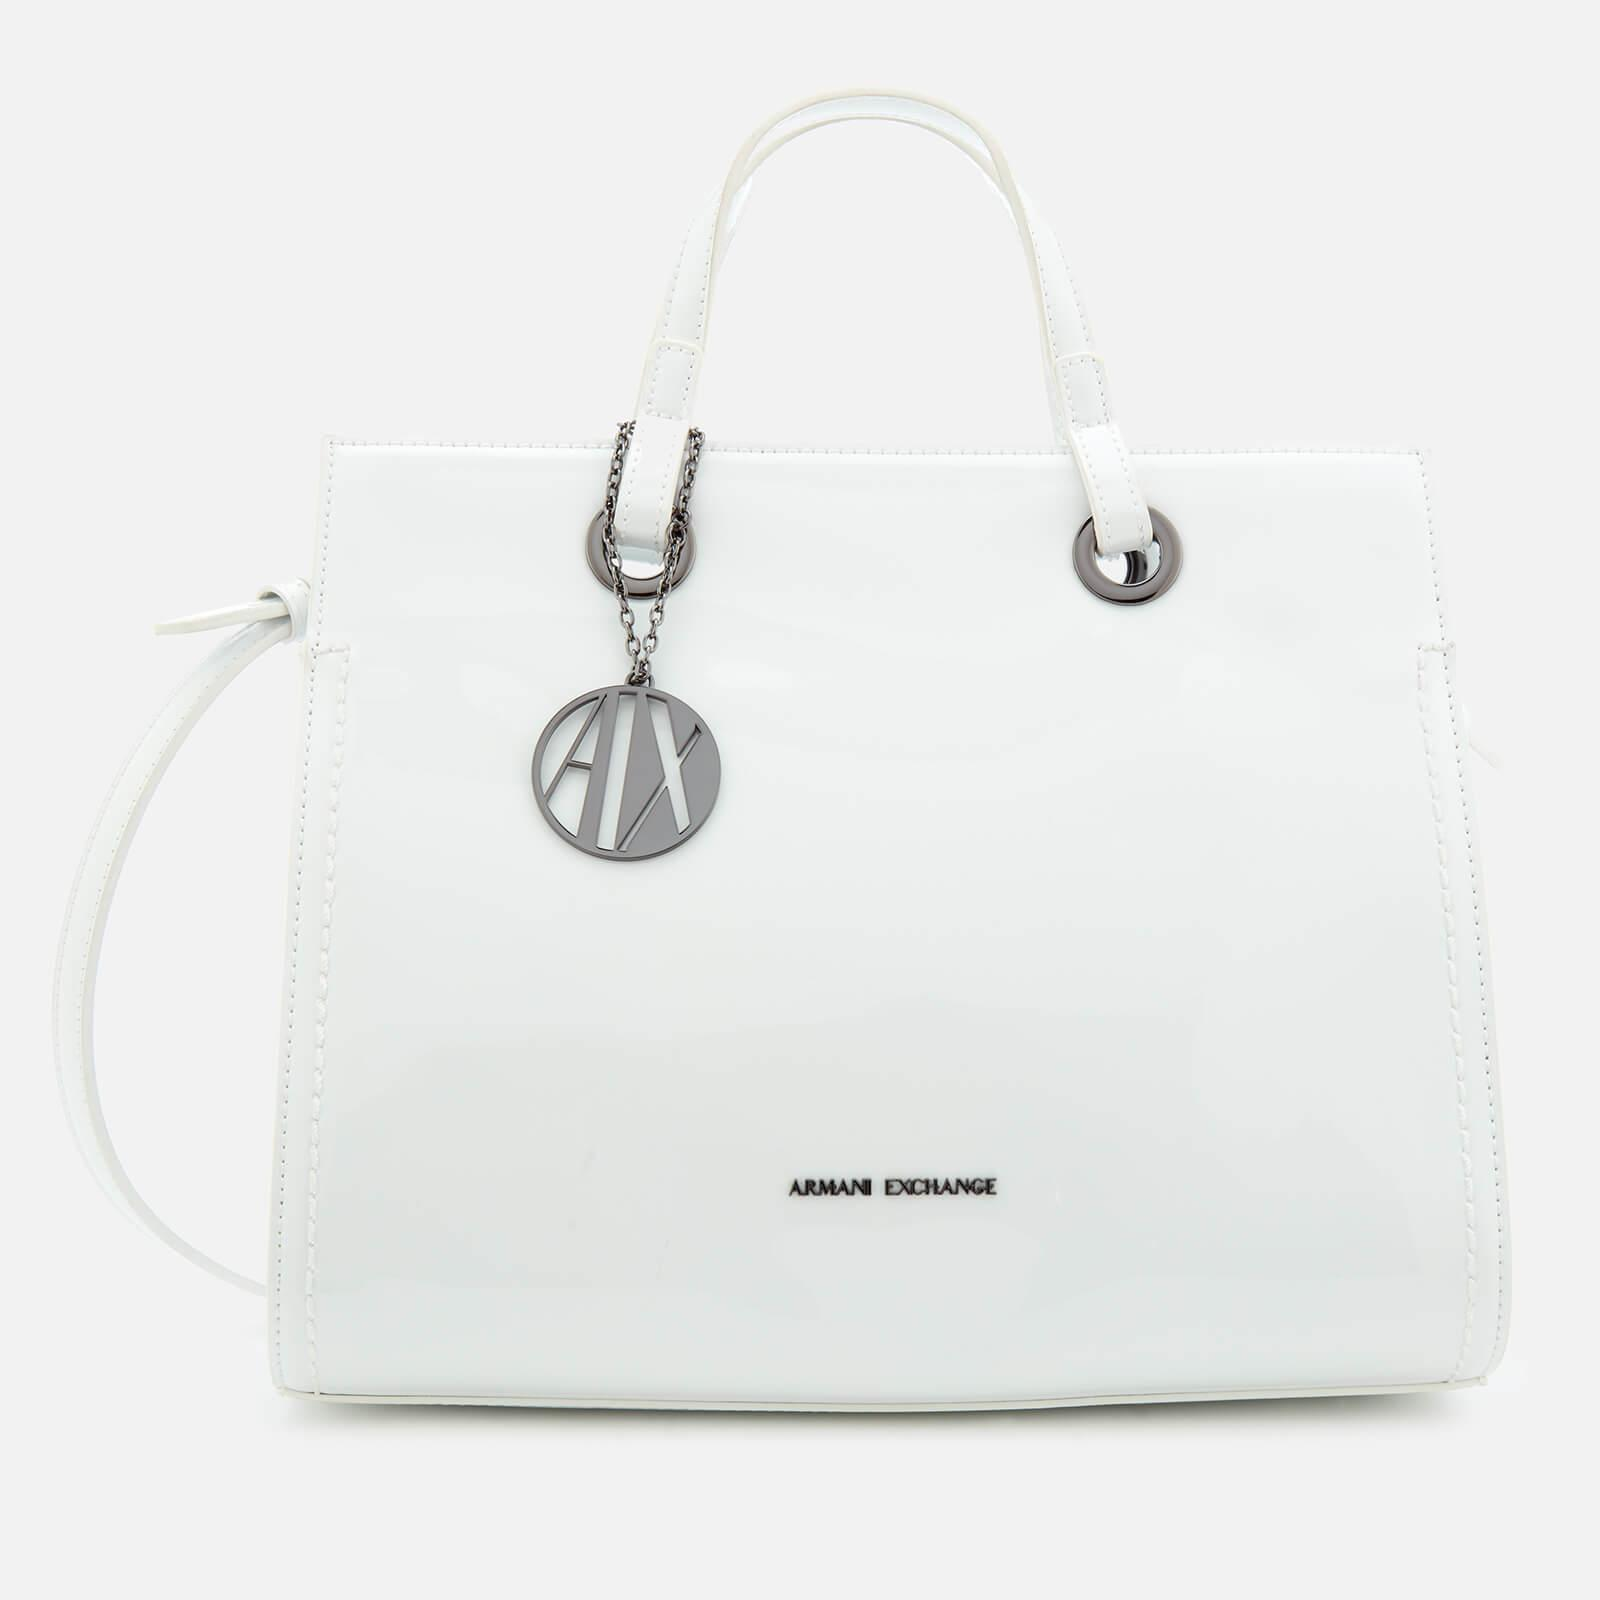 Lyst - Armani Exchange Structured Patent Tote Bag in White e17e8321ee45b